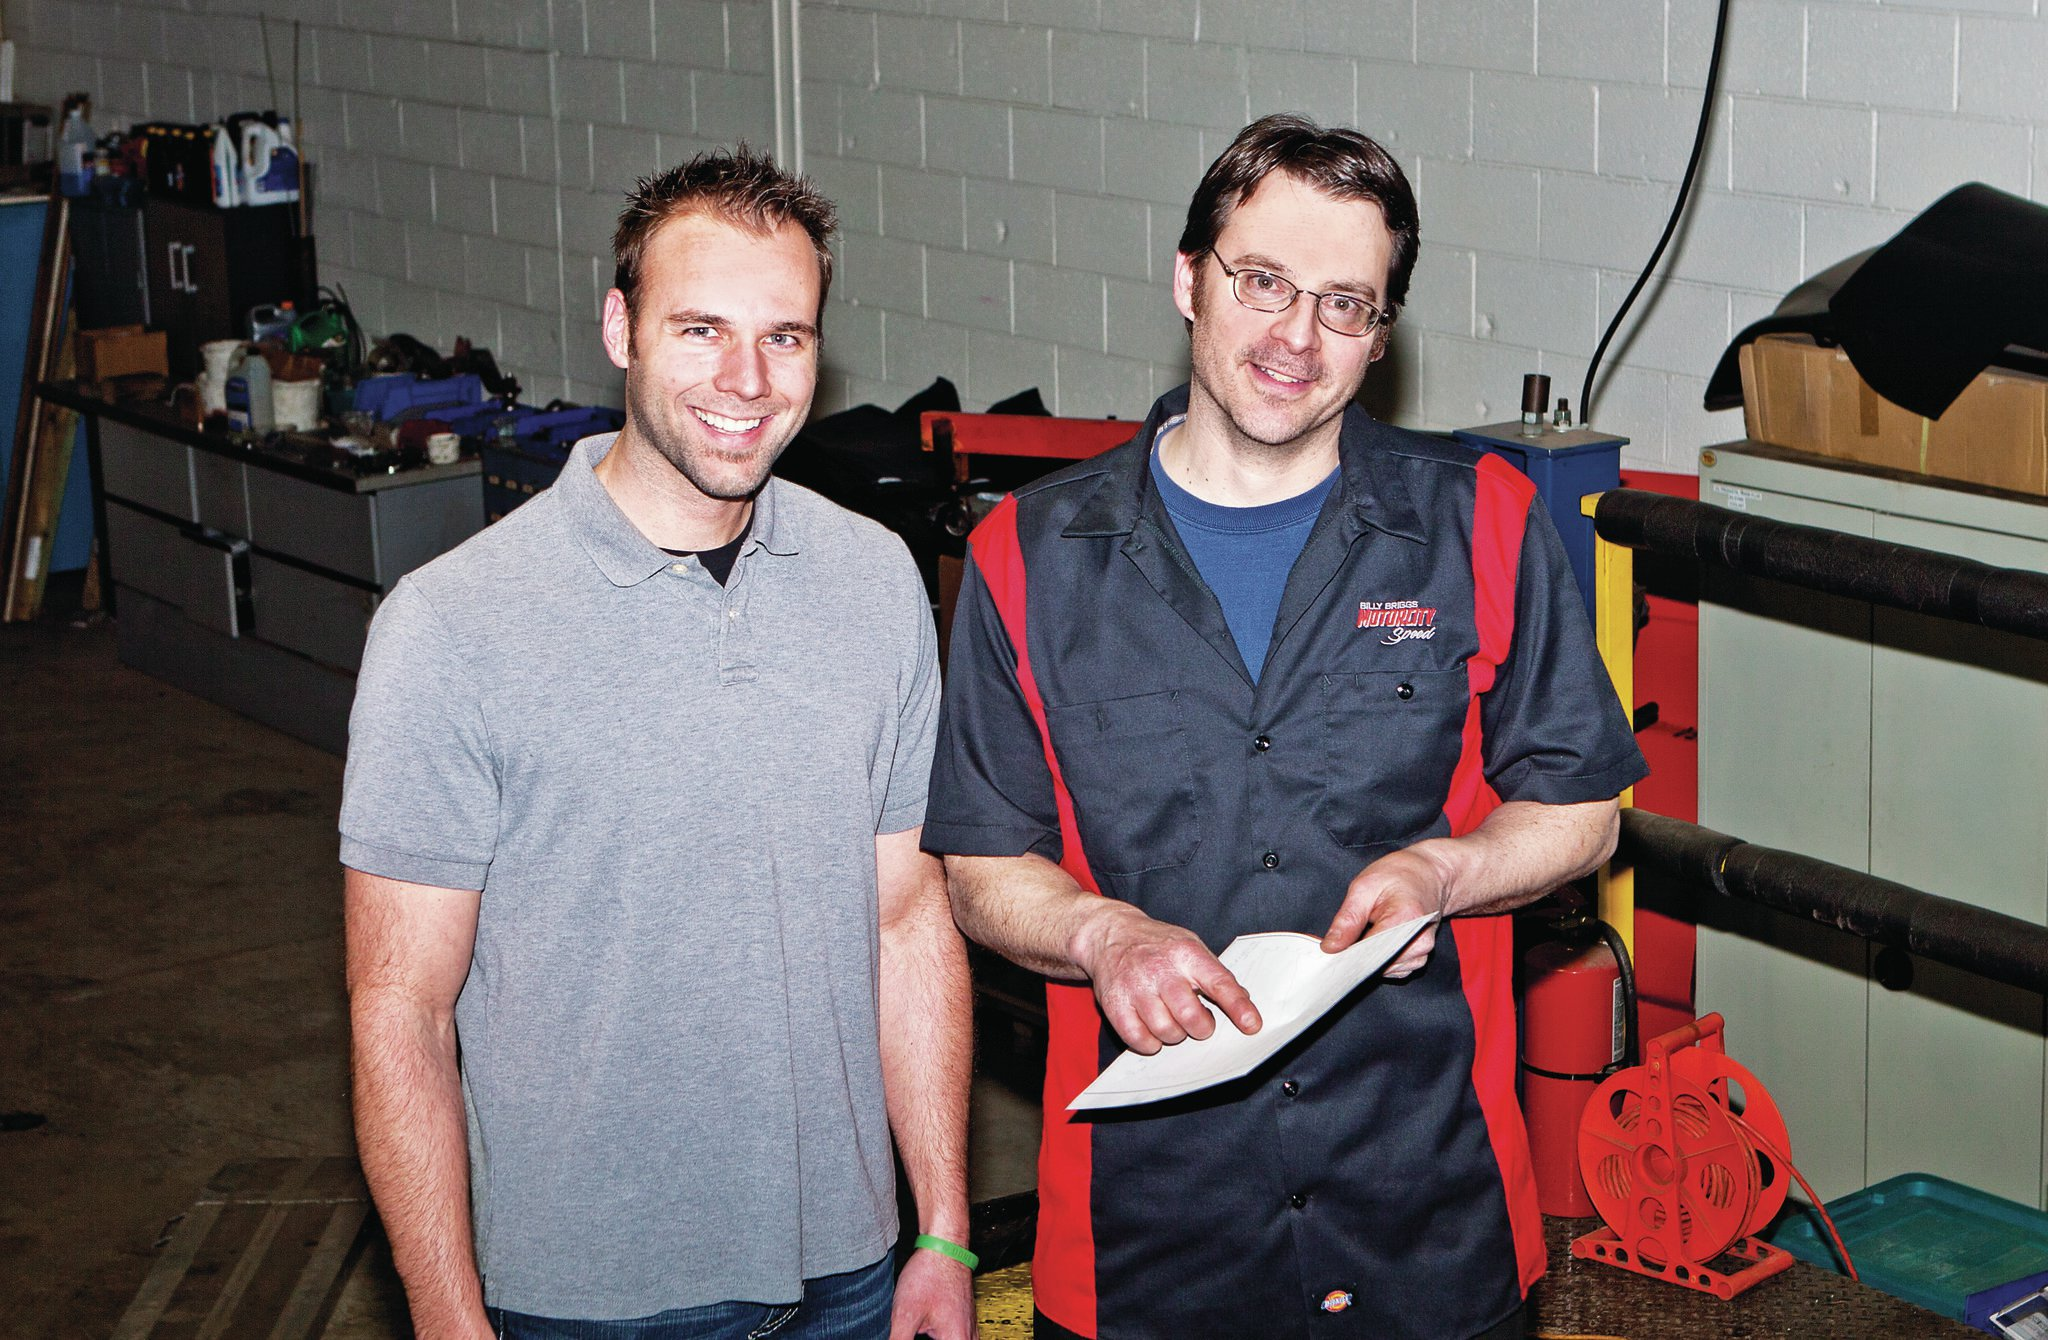 MotorCity Speed's Rich Gala (right) talks to Jason after sorting out the car's fuel supply, calibration, and valvetrain problems.